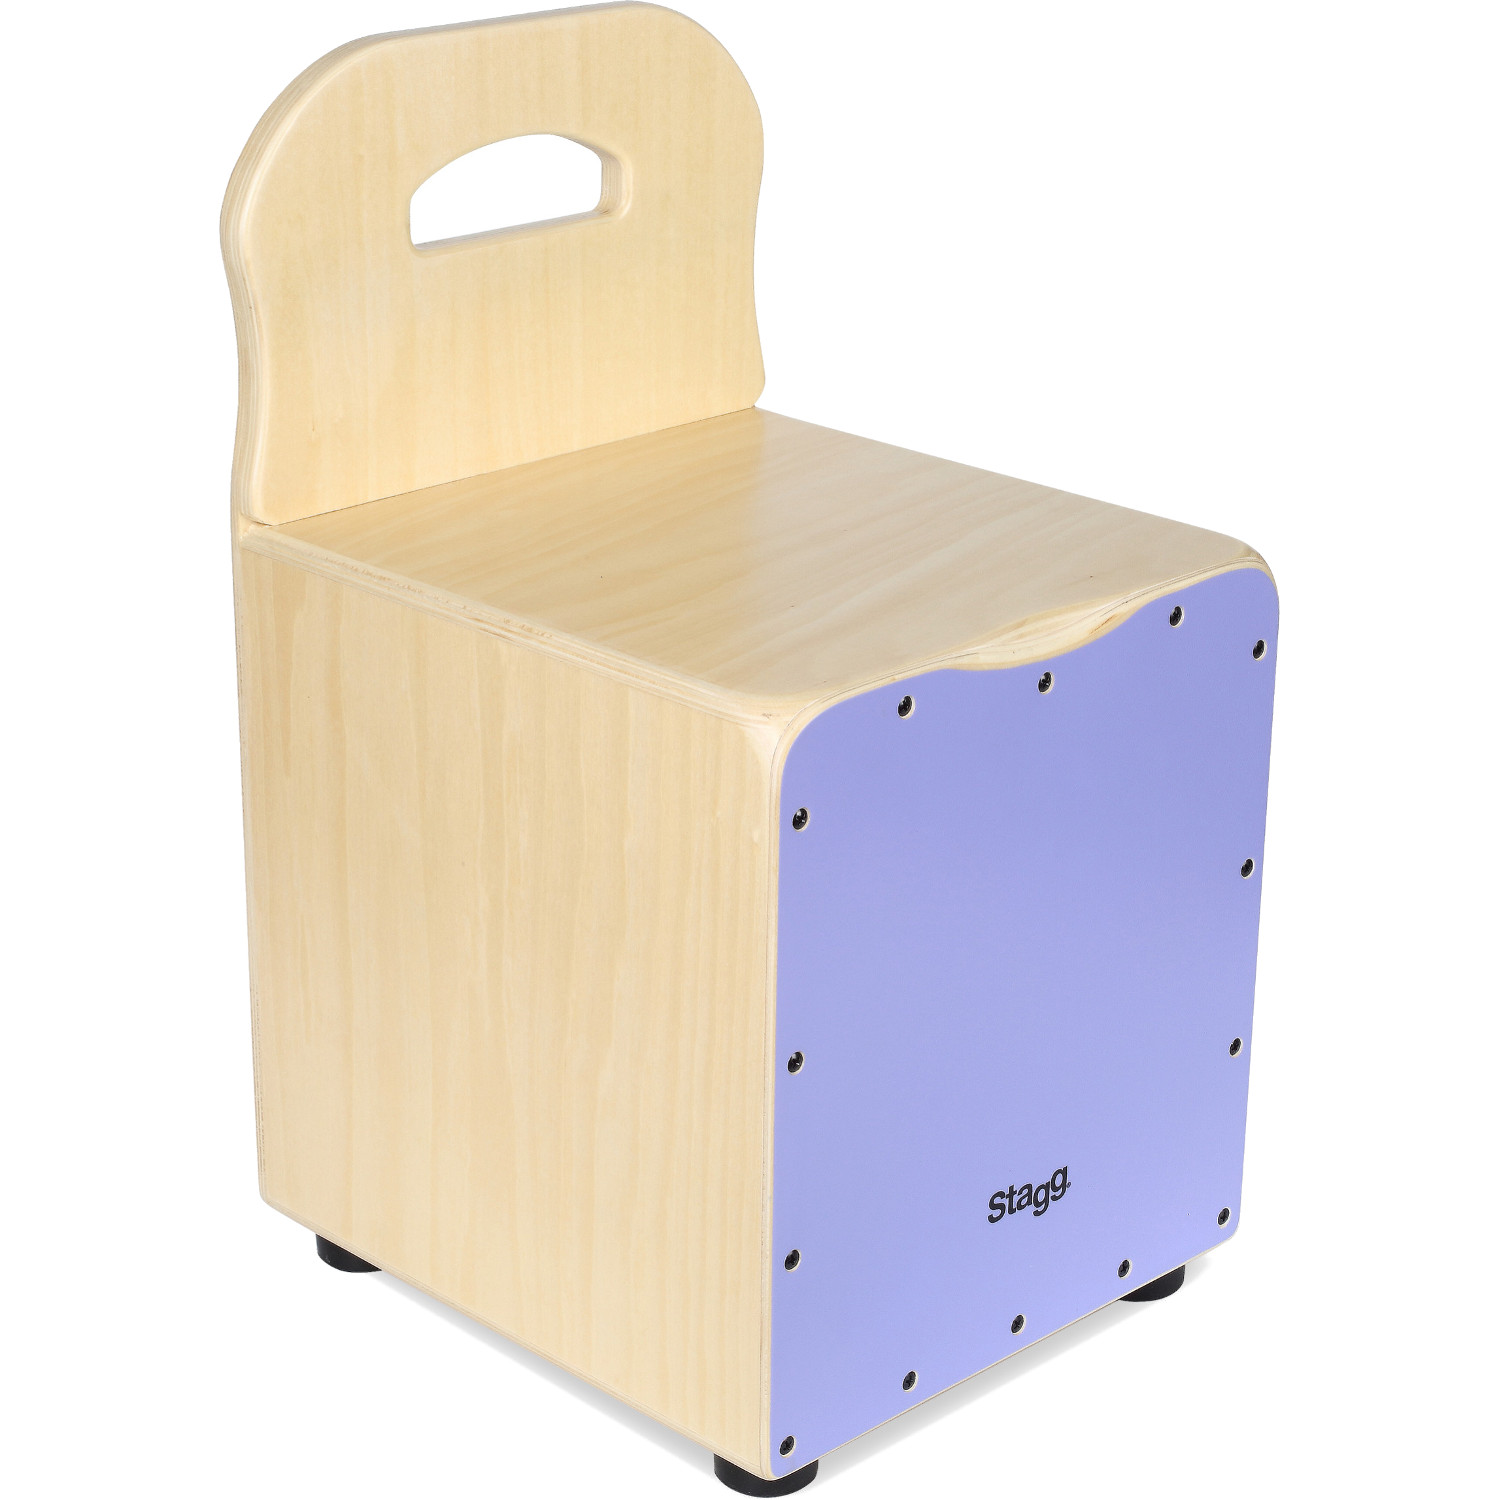 Stagg CAJ KID PP children's cajon with back support, purple